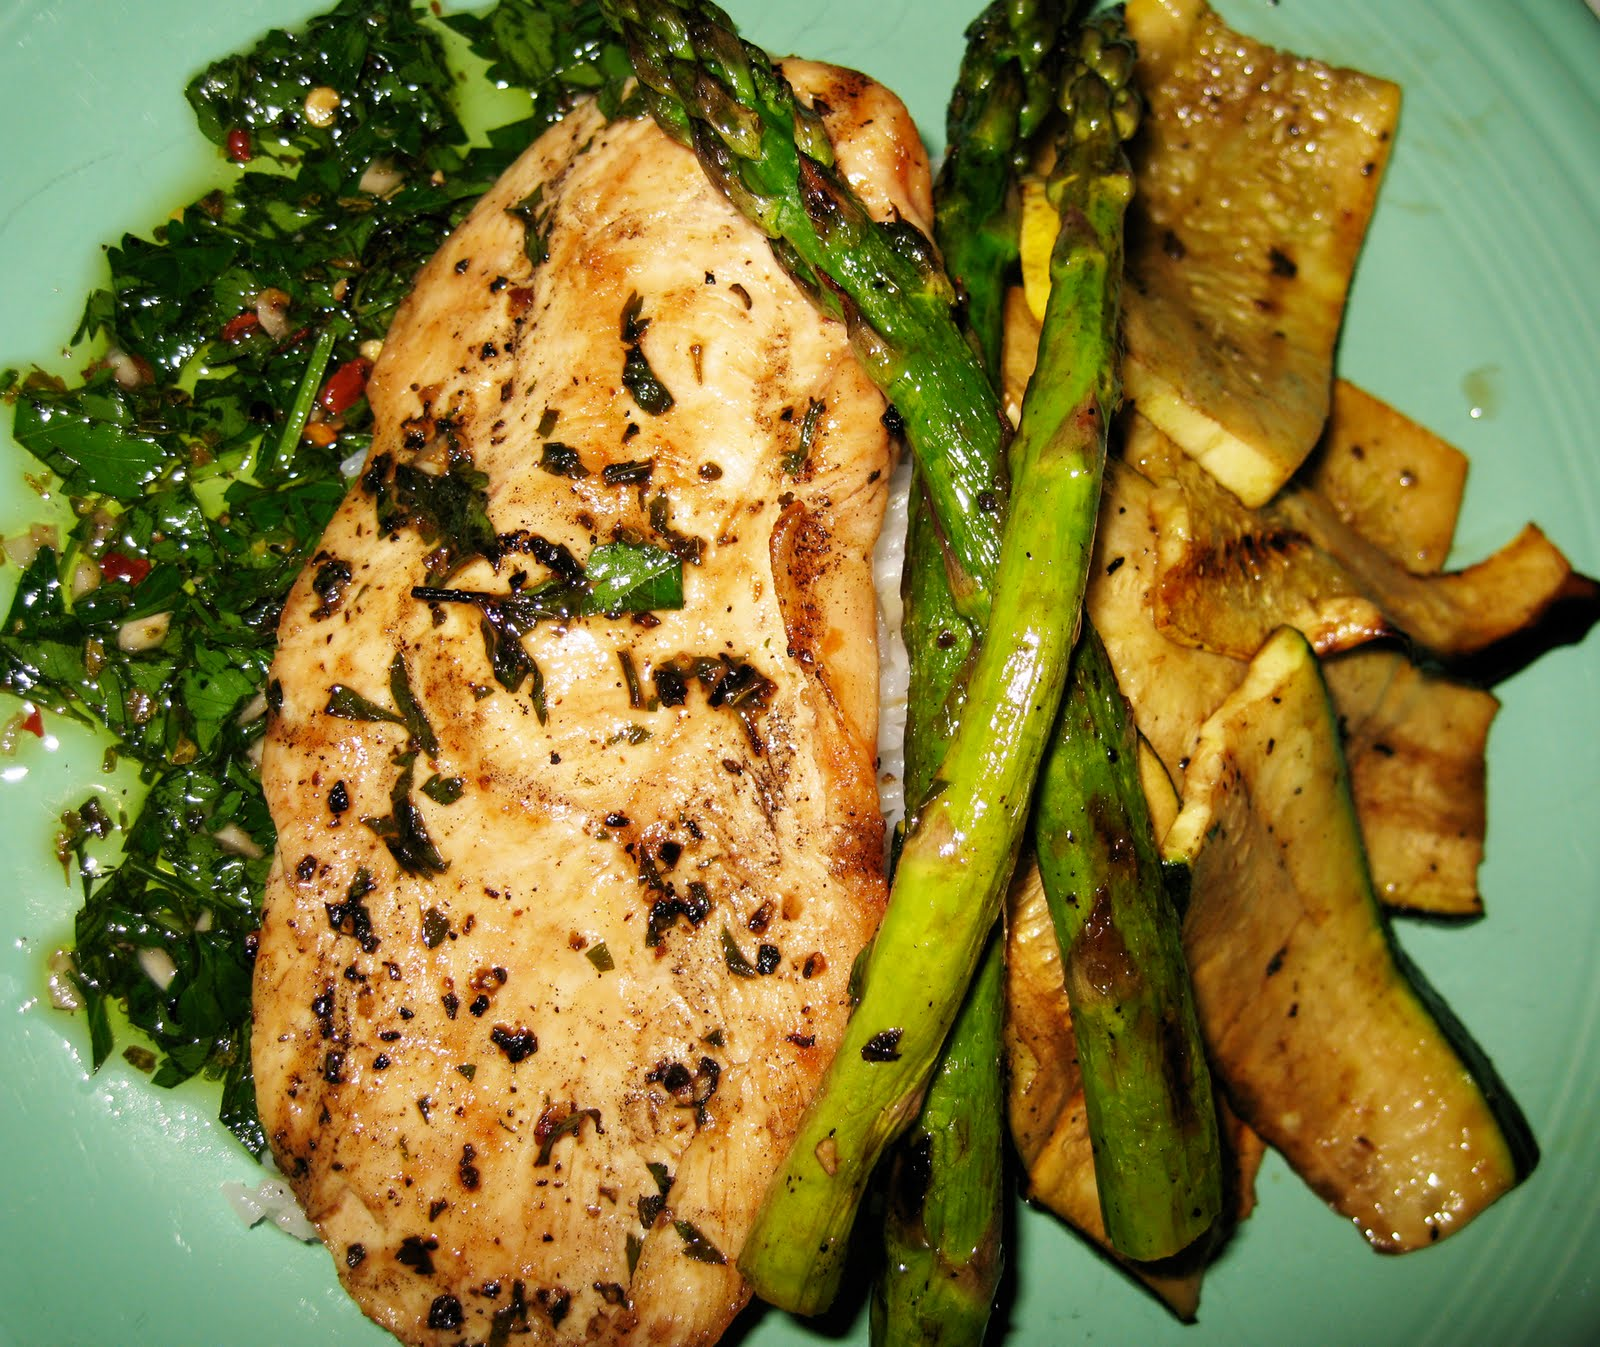 Straight No chaser: Chicken Chimichurri Grill